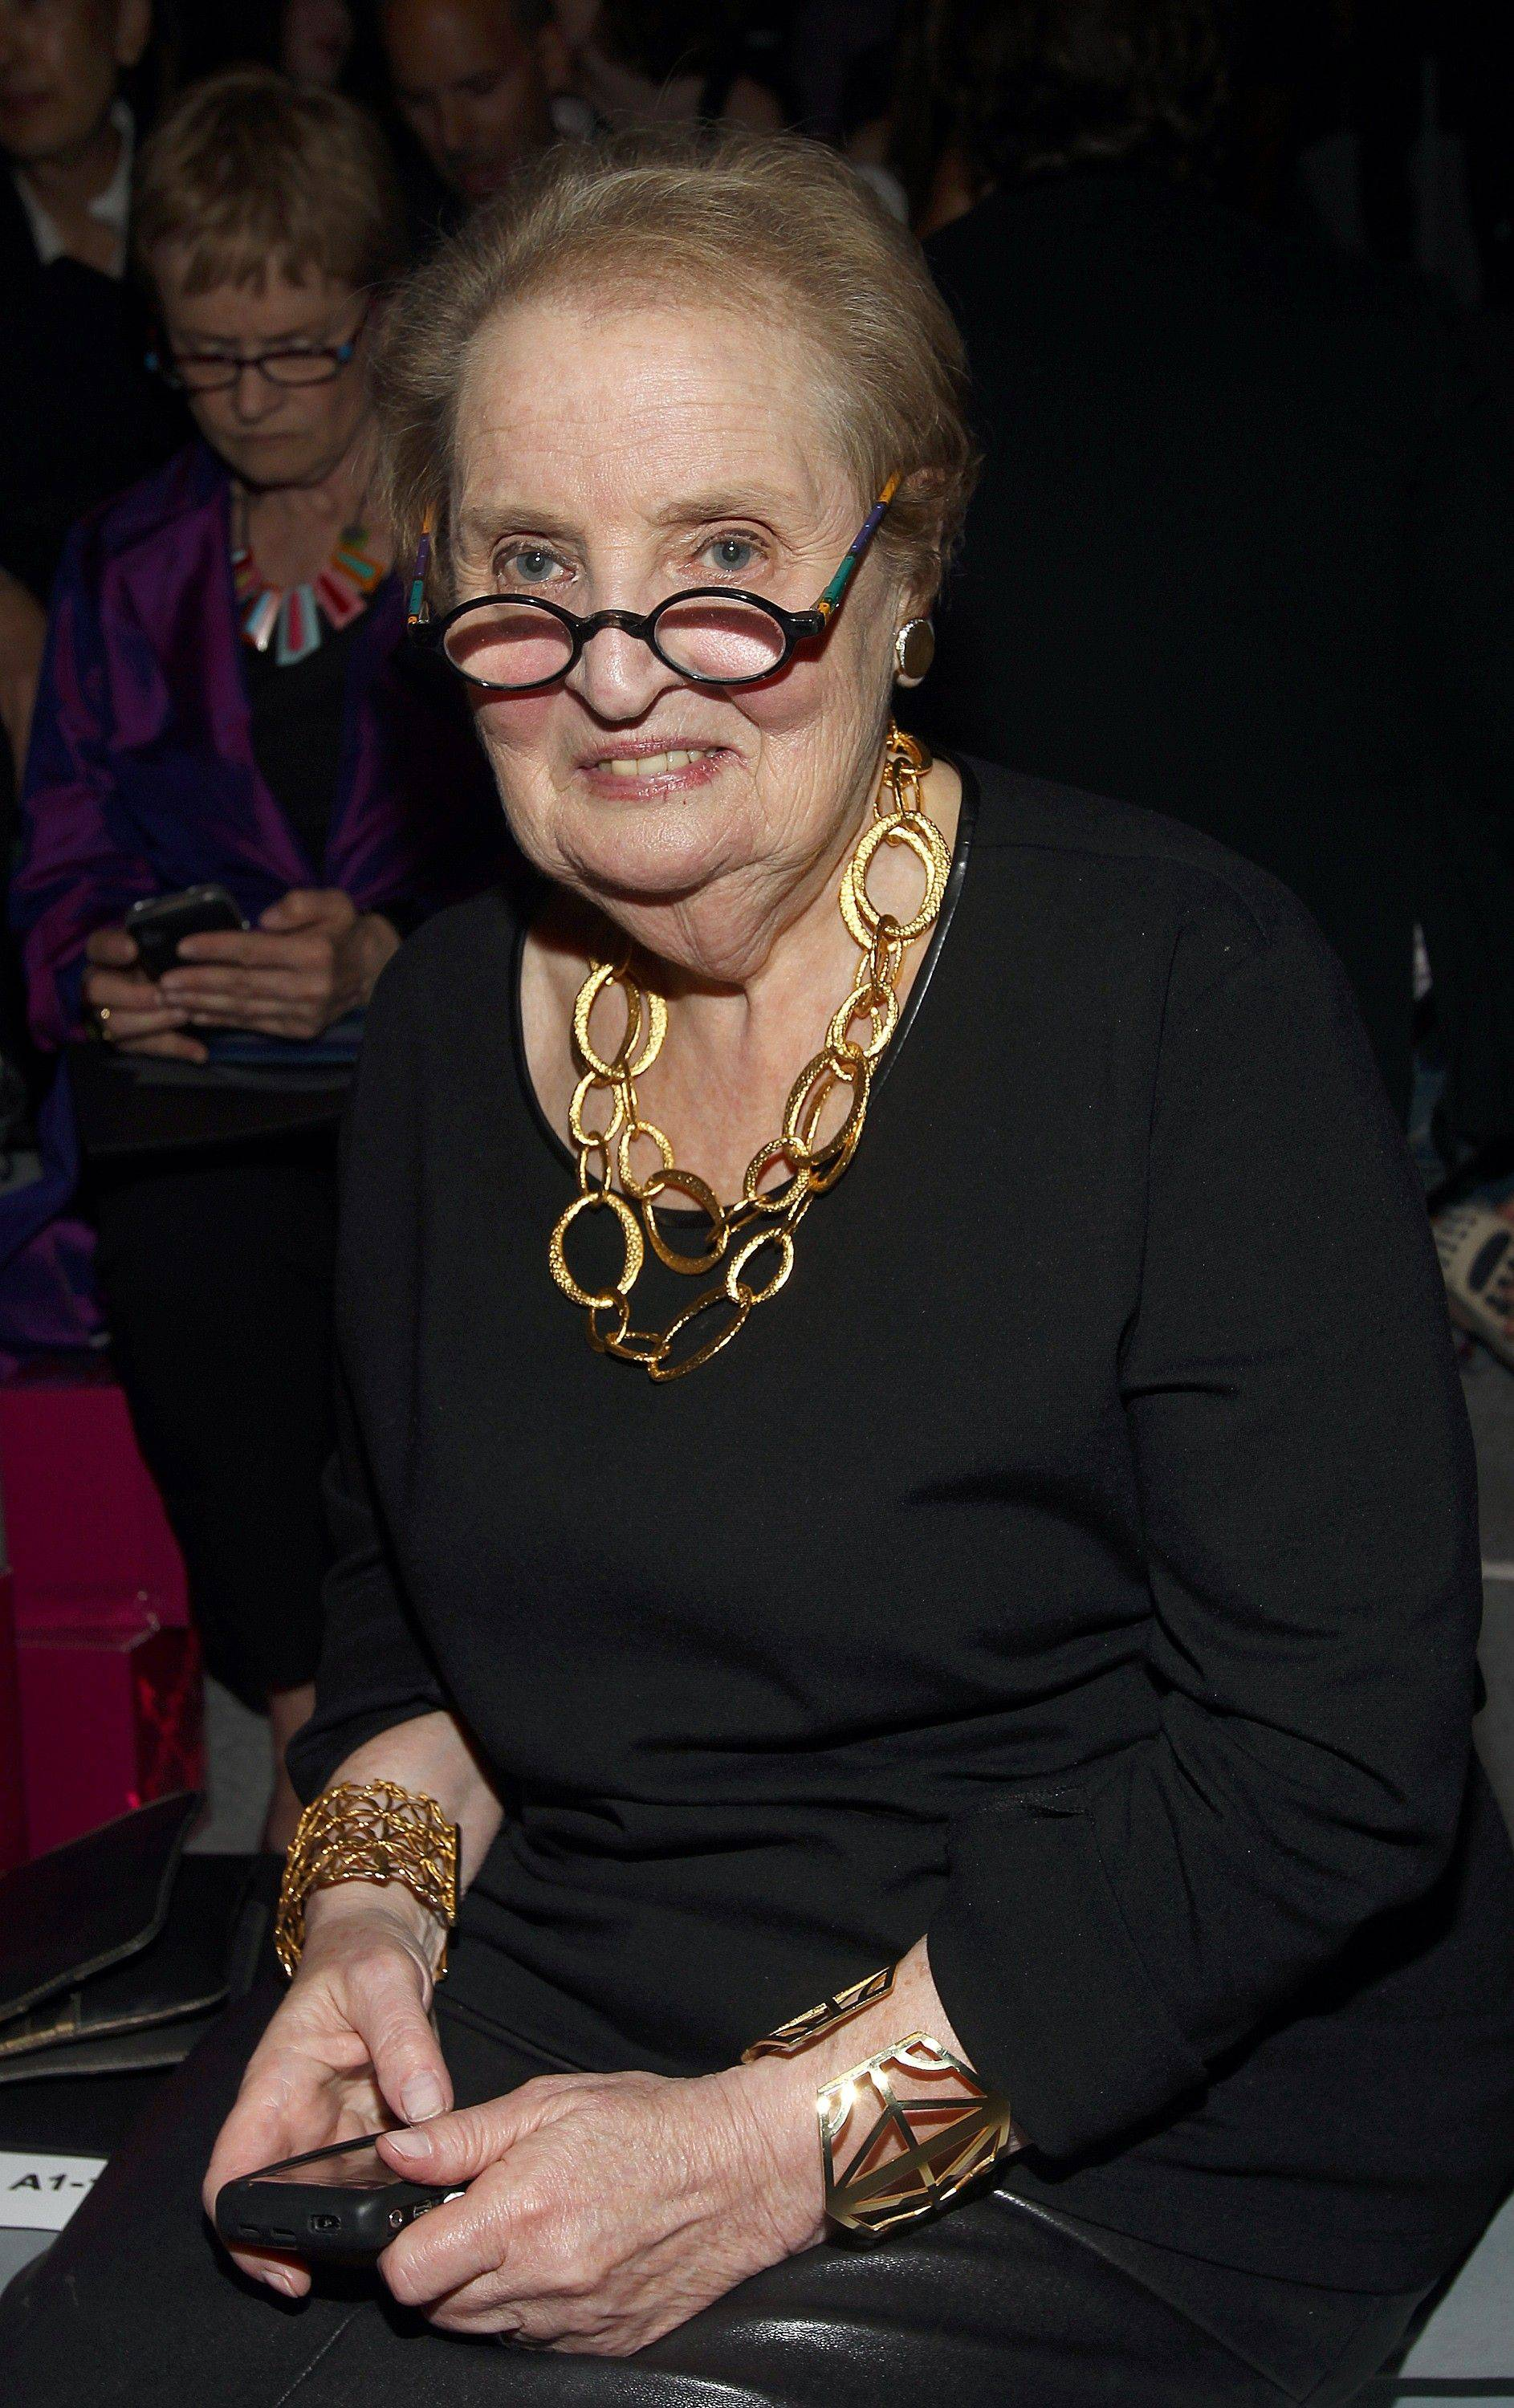 Former Secretary of State Madeleine Albright attends the Vera Wang 2012 Spring collection during Mercedes Benz Fashion Week at Lincoln Center on Tuesday, Sept. 13, 2011.